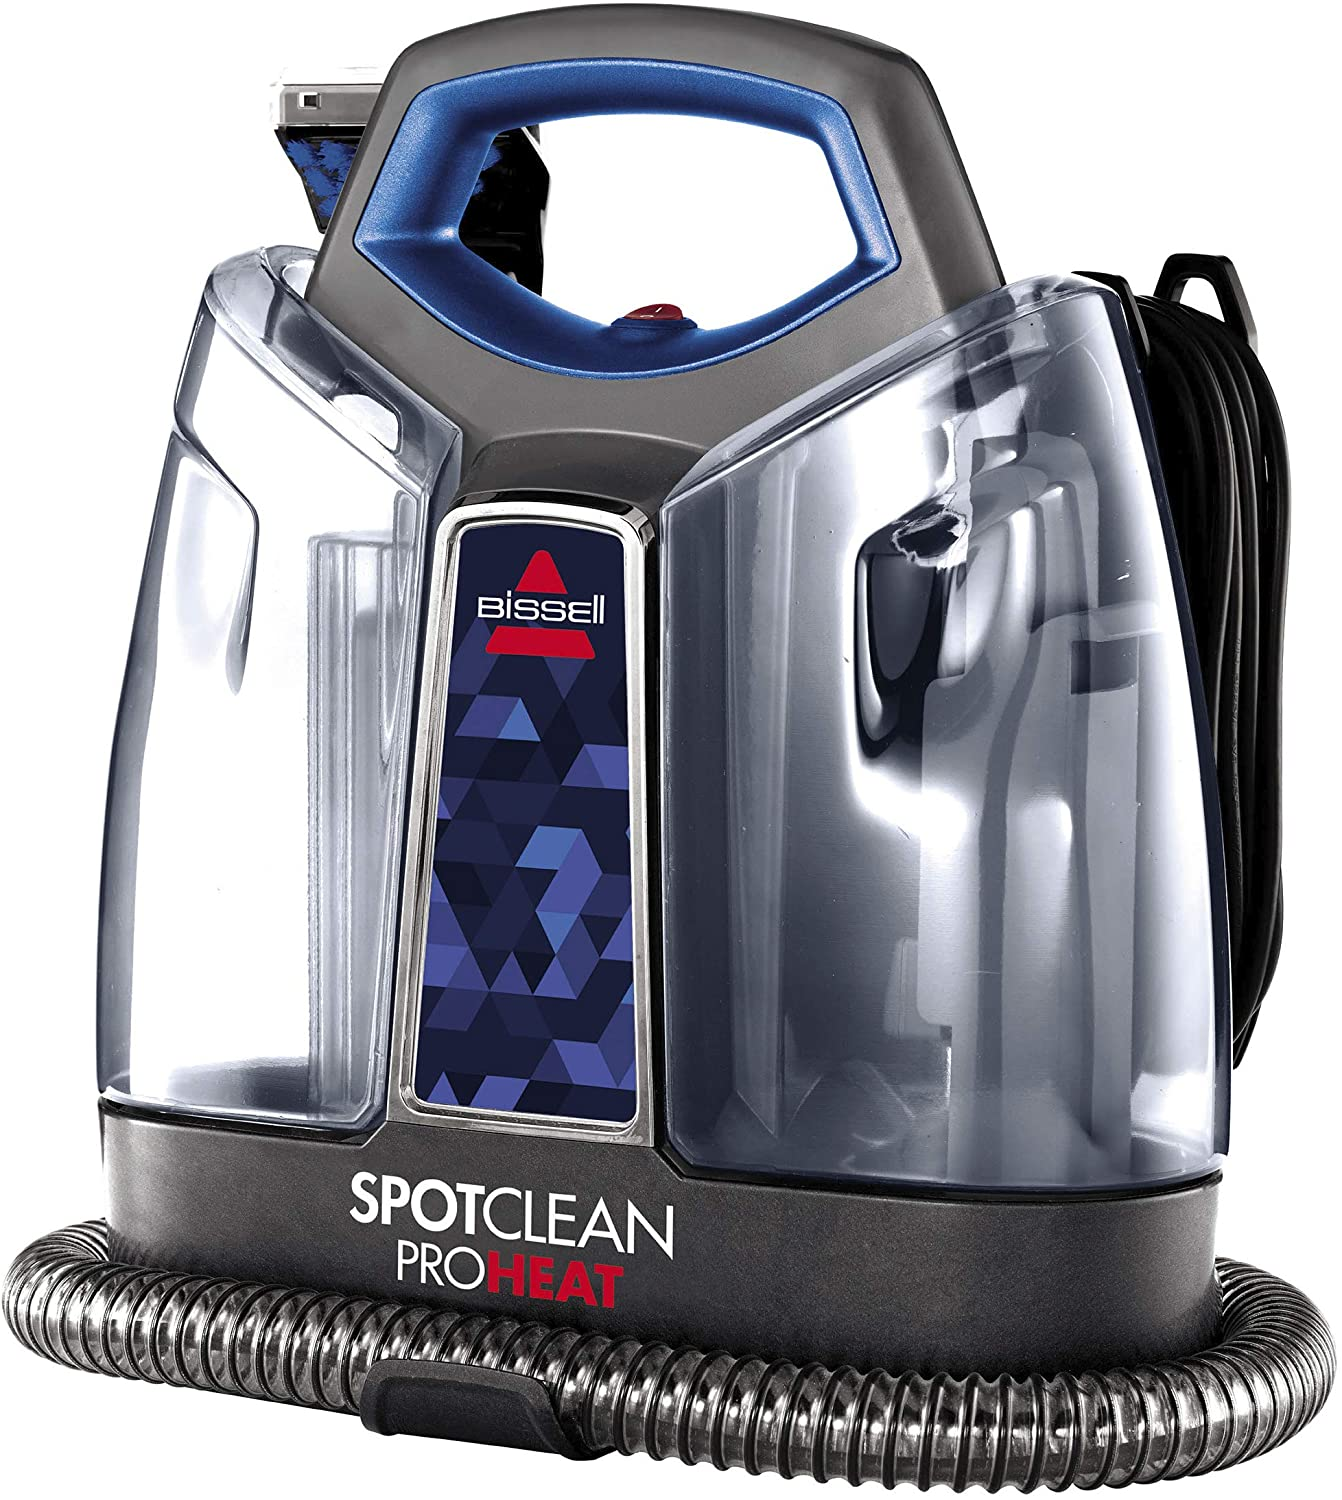 BISSELL 2694 ProHeat SpotClean Portable Stain and Spot Carpet Cleaner